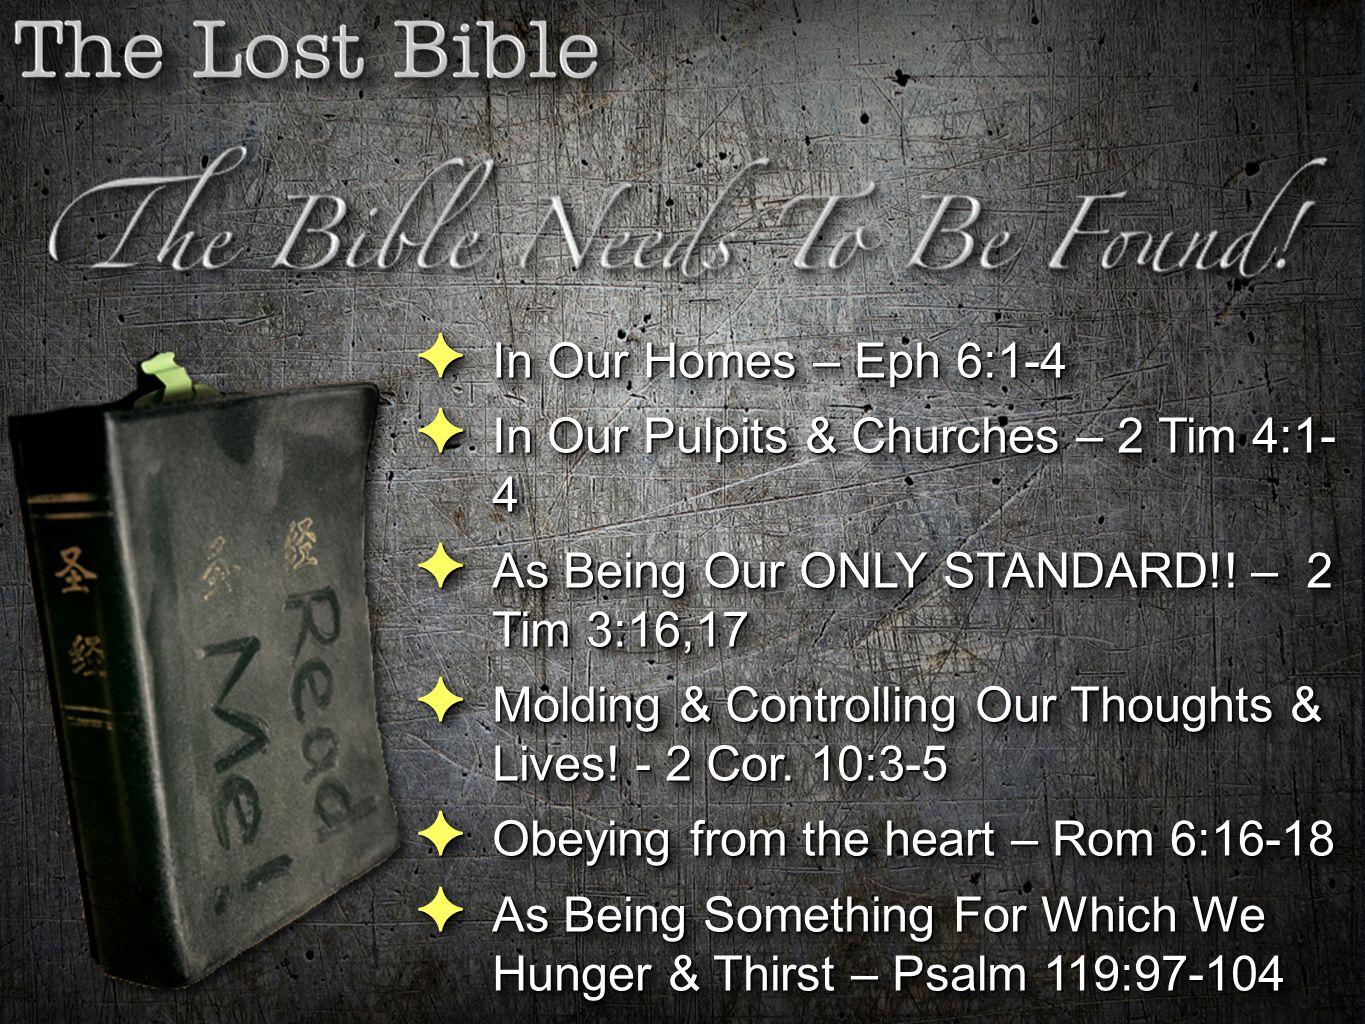 In Our Homes – Eph 6:1-4 In Our Pulpits & Churches – 2 Tim 4:1- 4. As Being Our ONLY STANDARD!! – 2 Tim 3:16,17.